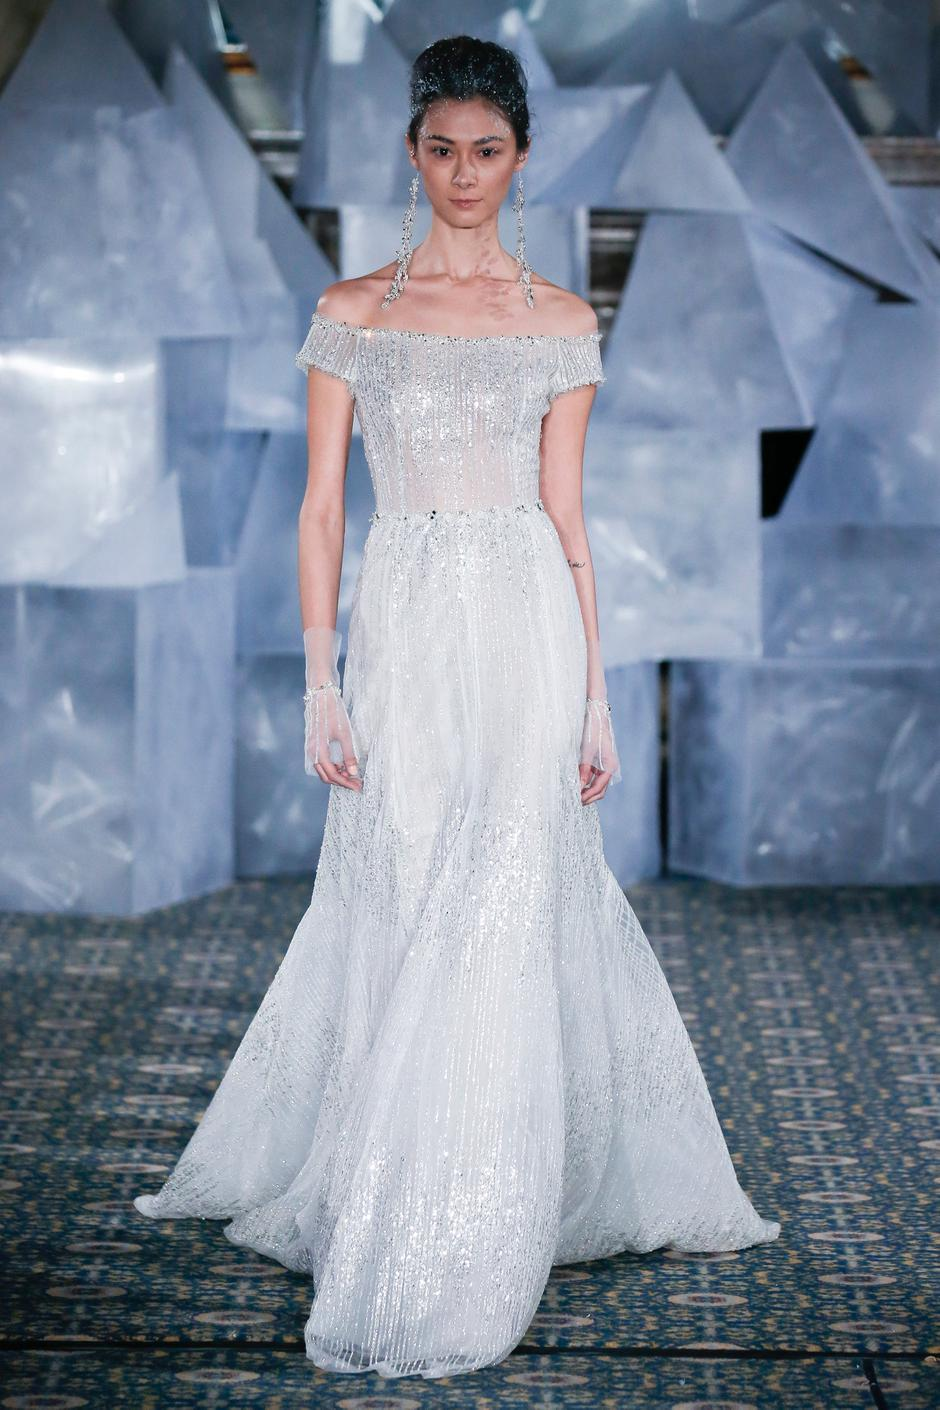 New York Bridal Fashion Week: Mira Zwillinger showcases spring 2019 ...